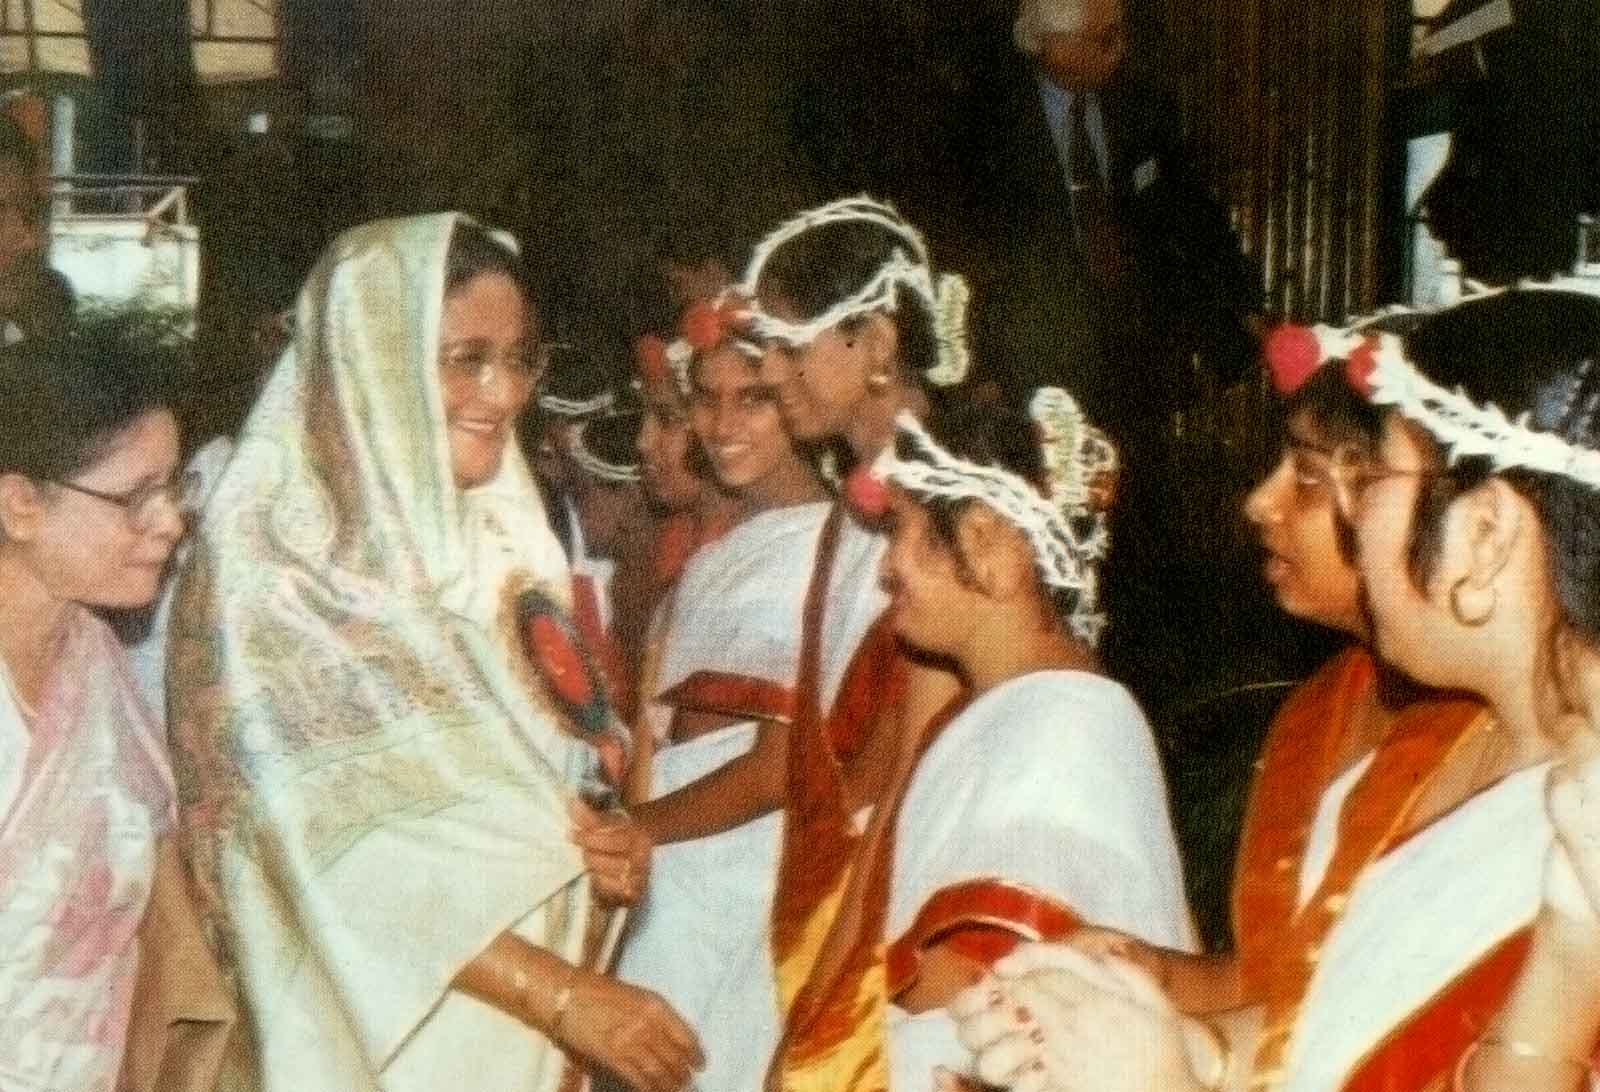 Prime Minister Sheikh Hasina with some performers at the 13th ACMR Bangladesh, 1997